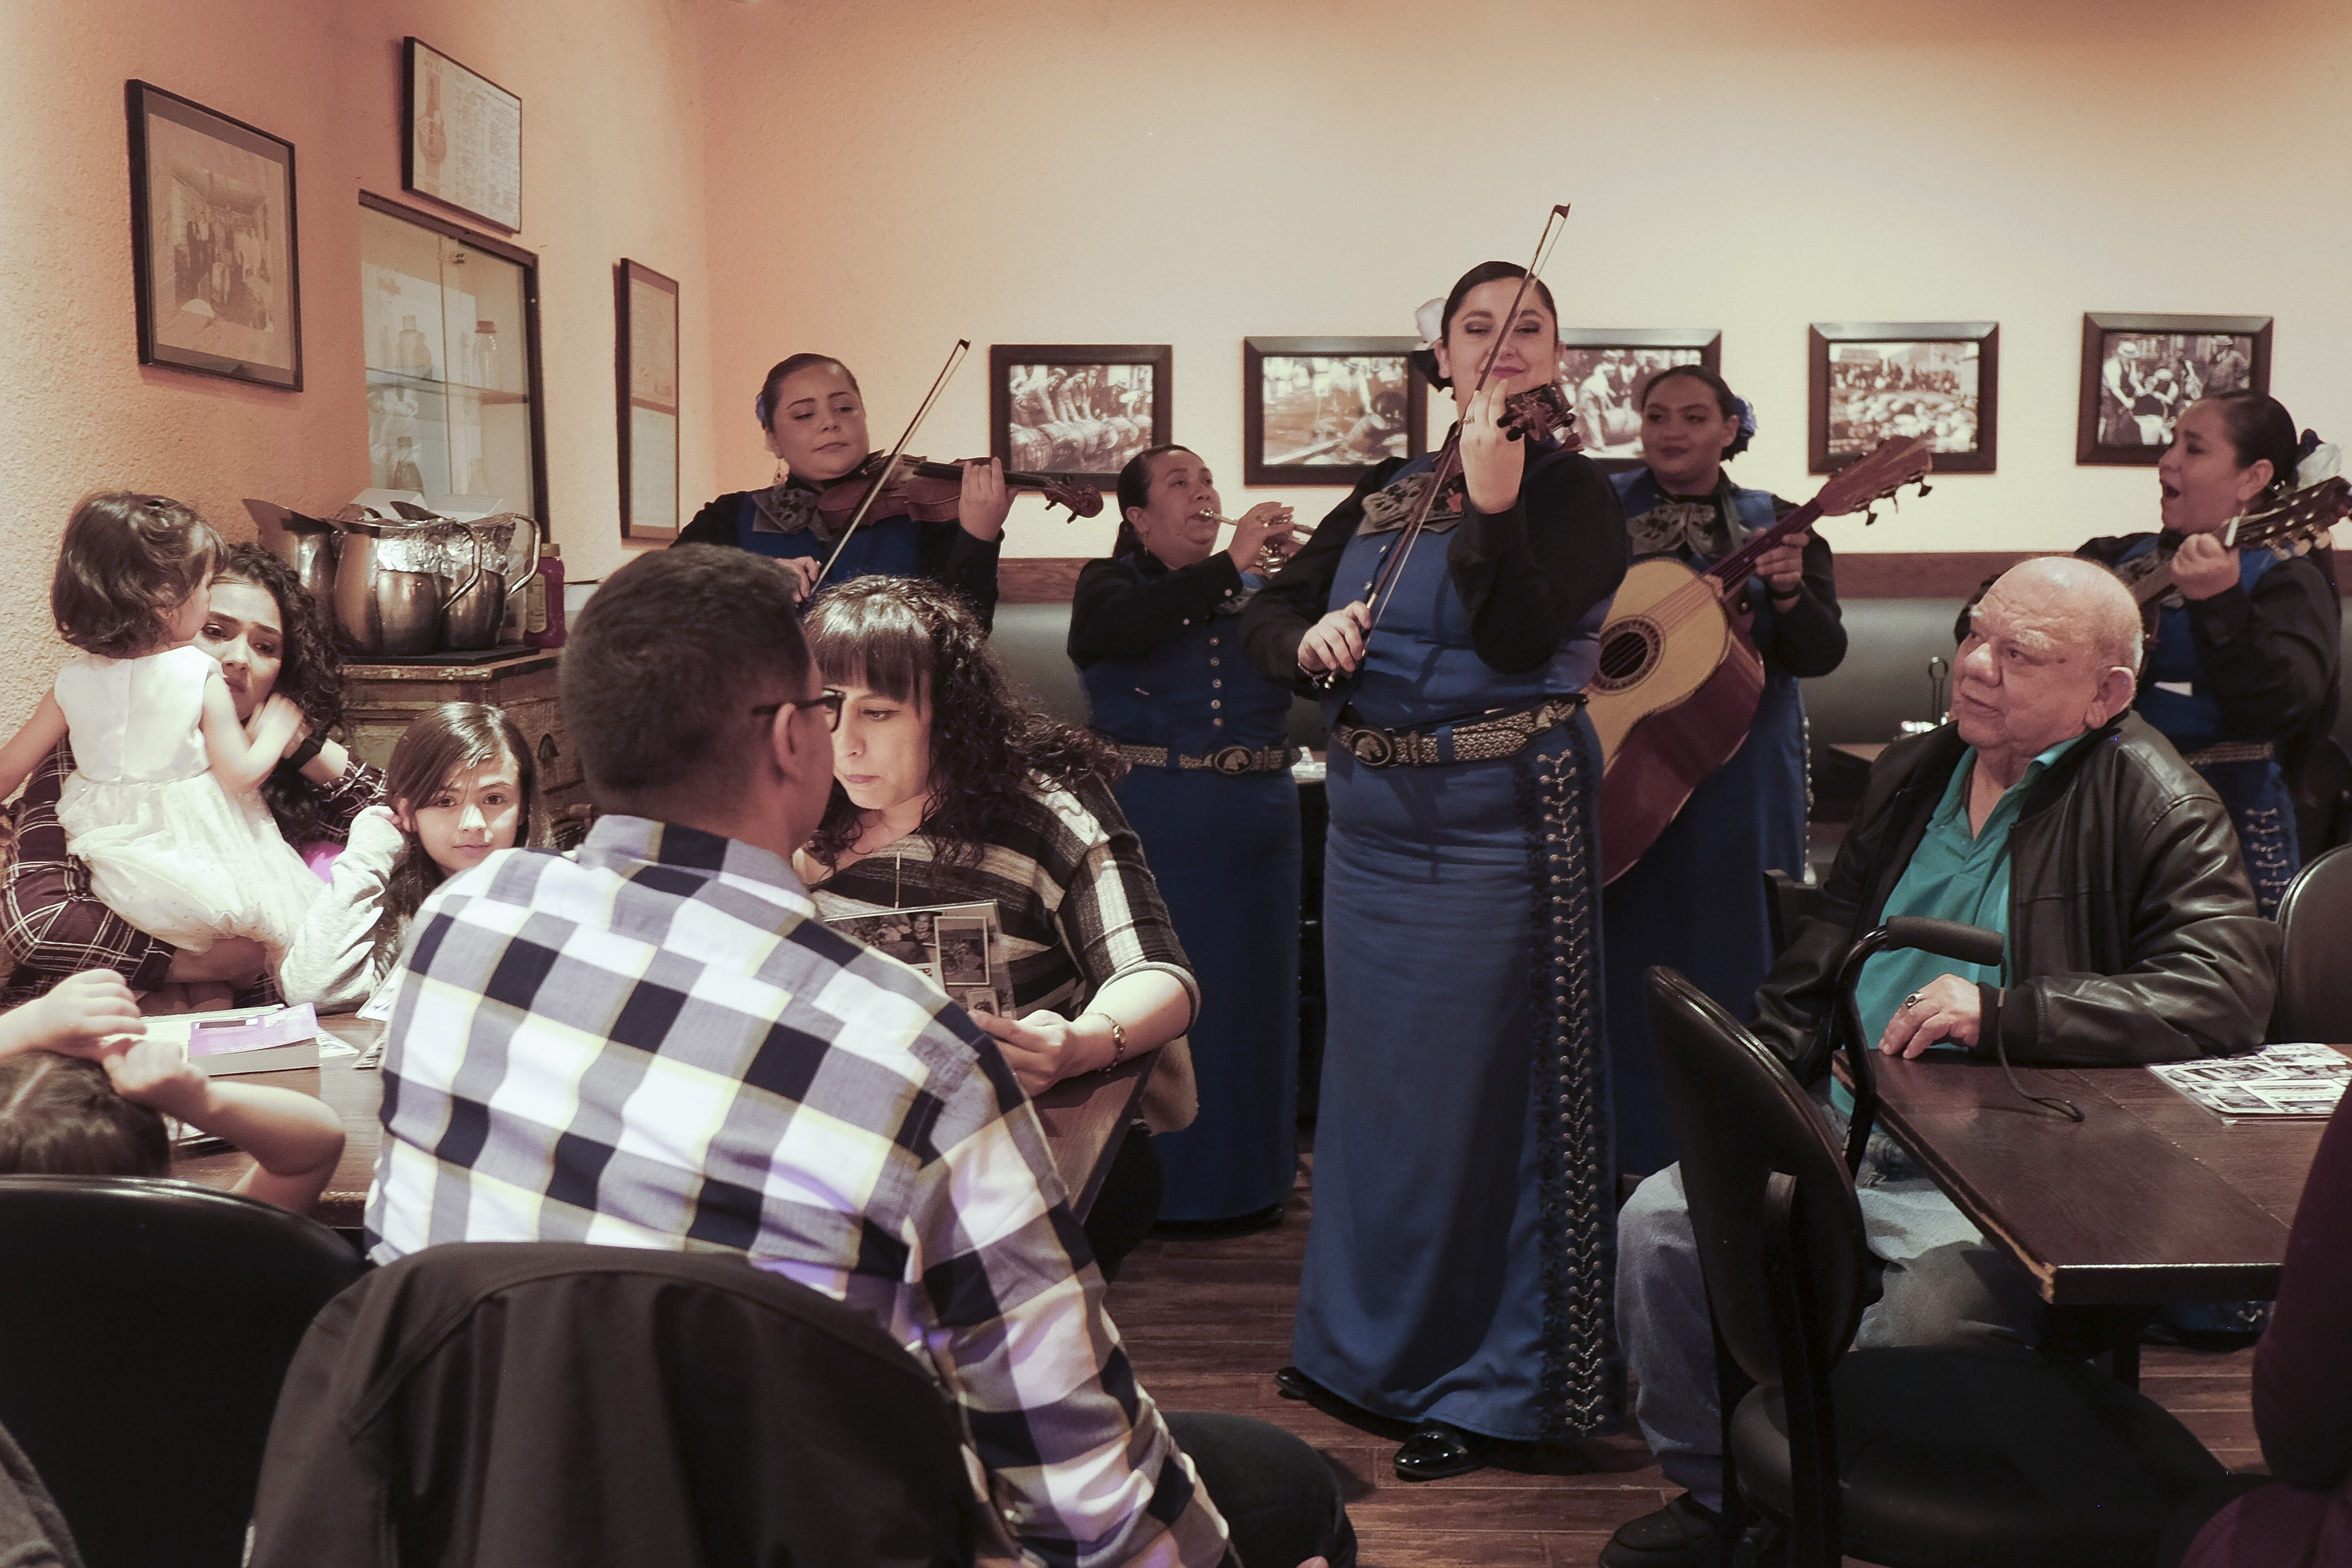 Músicos se exhiben en el L&J Cafe de El Paso, Texas. (Jessica Lutz/The New York Times)